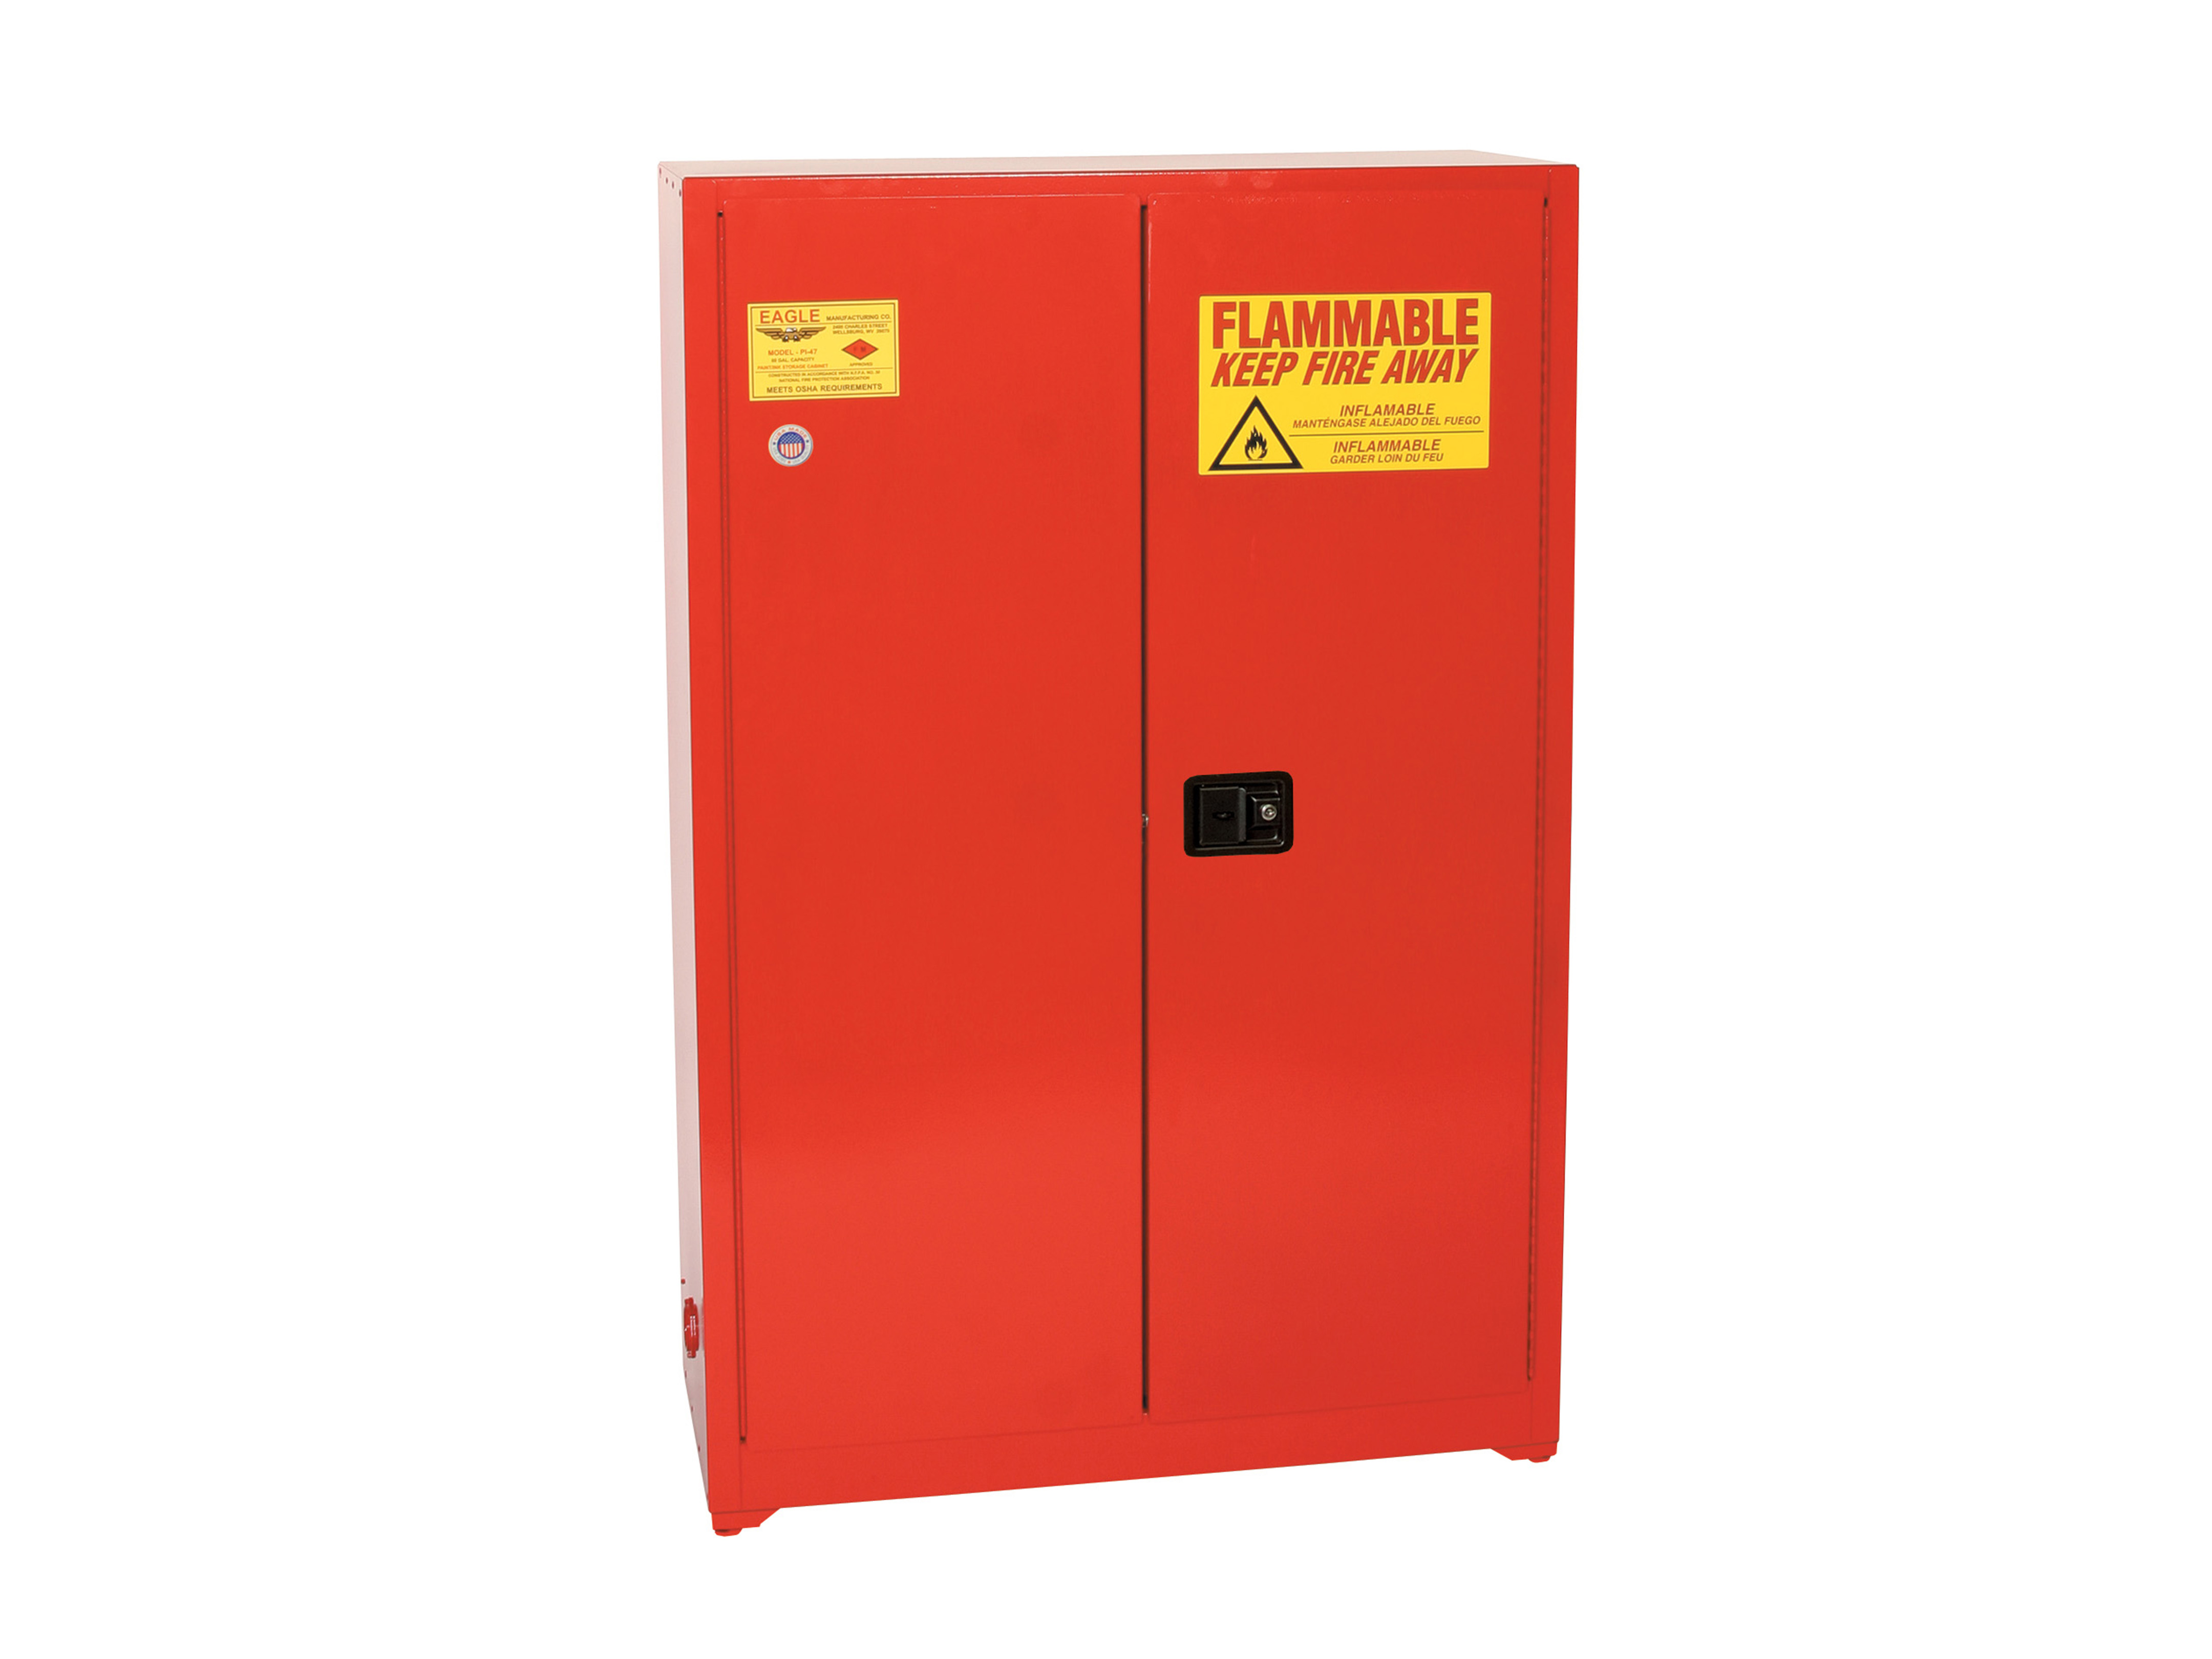 Safety Cabinets Amp Outdoor Lockers Archives Page 2 Of 2